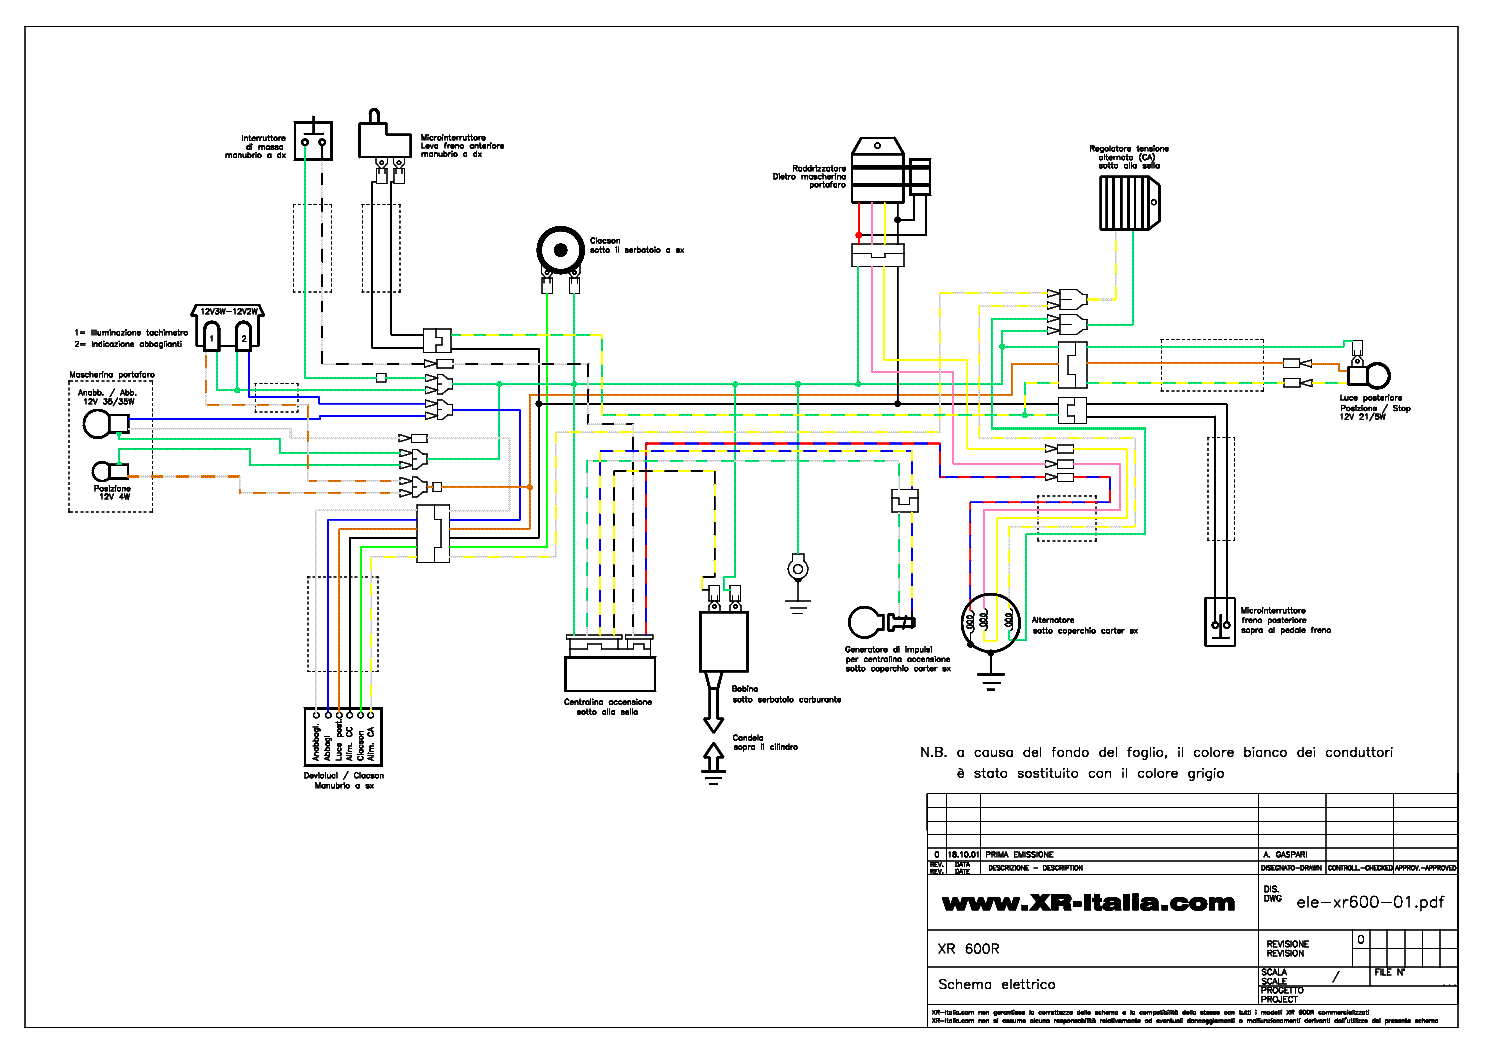 1995 xr600r wiring diagram   26 wiring diagram images